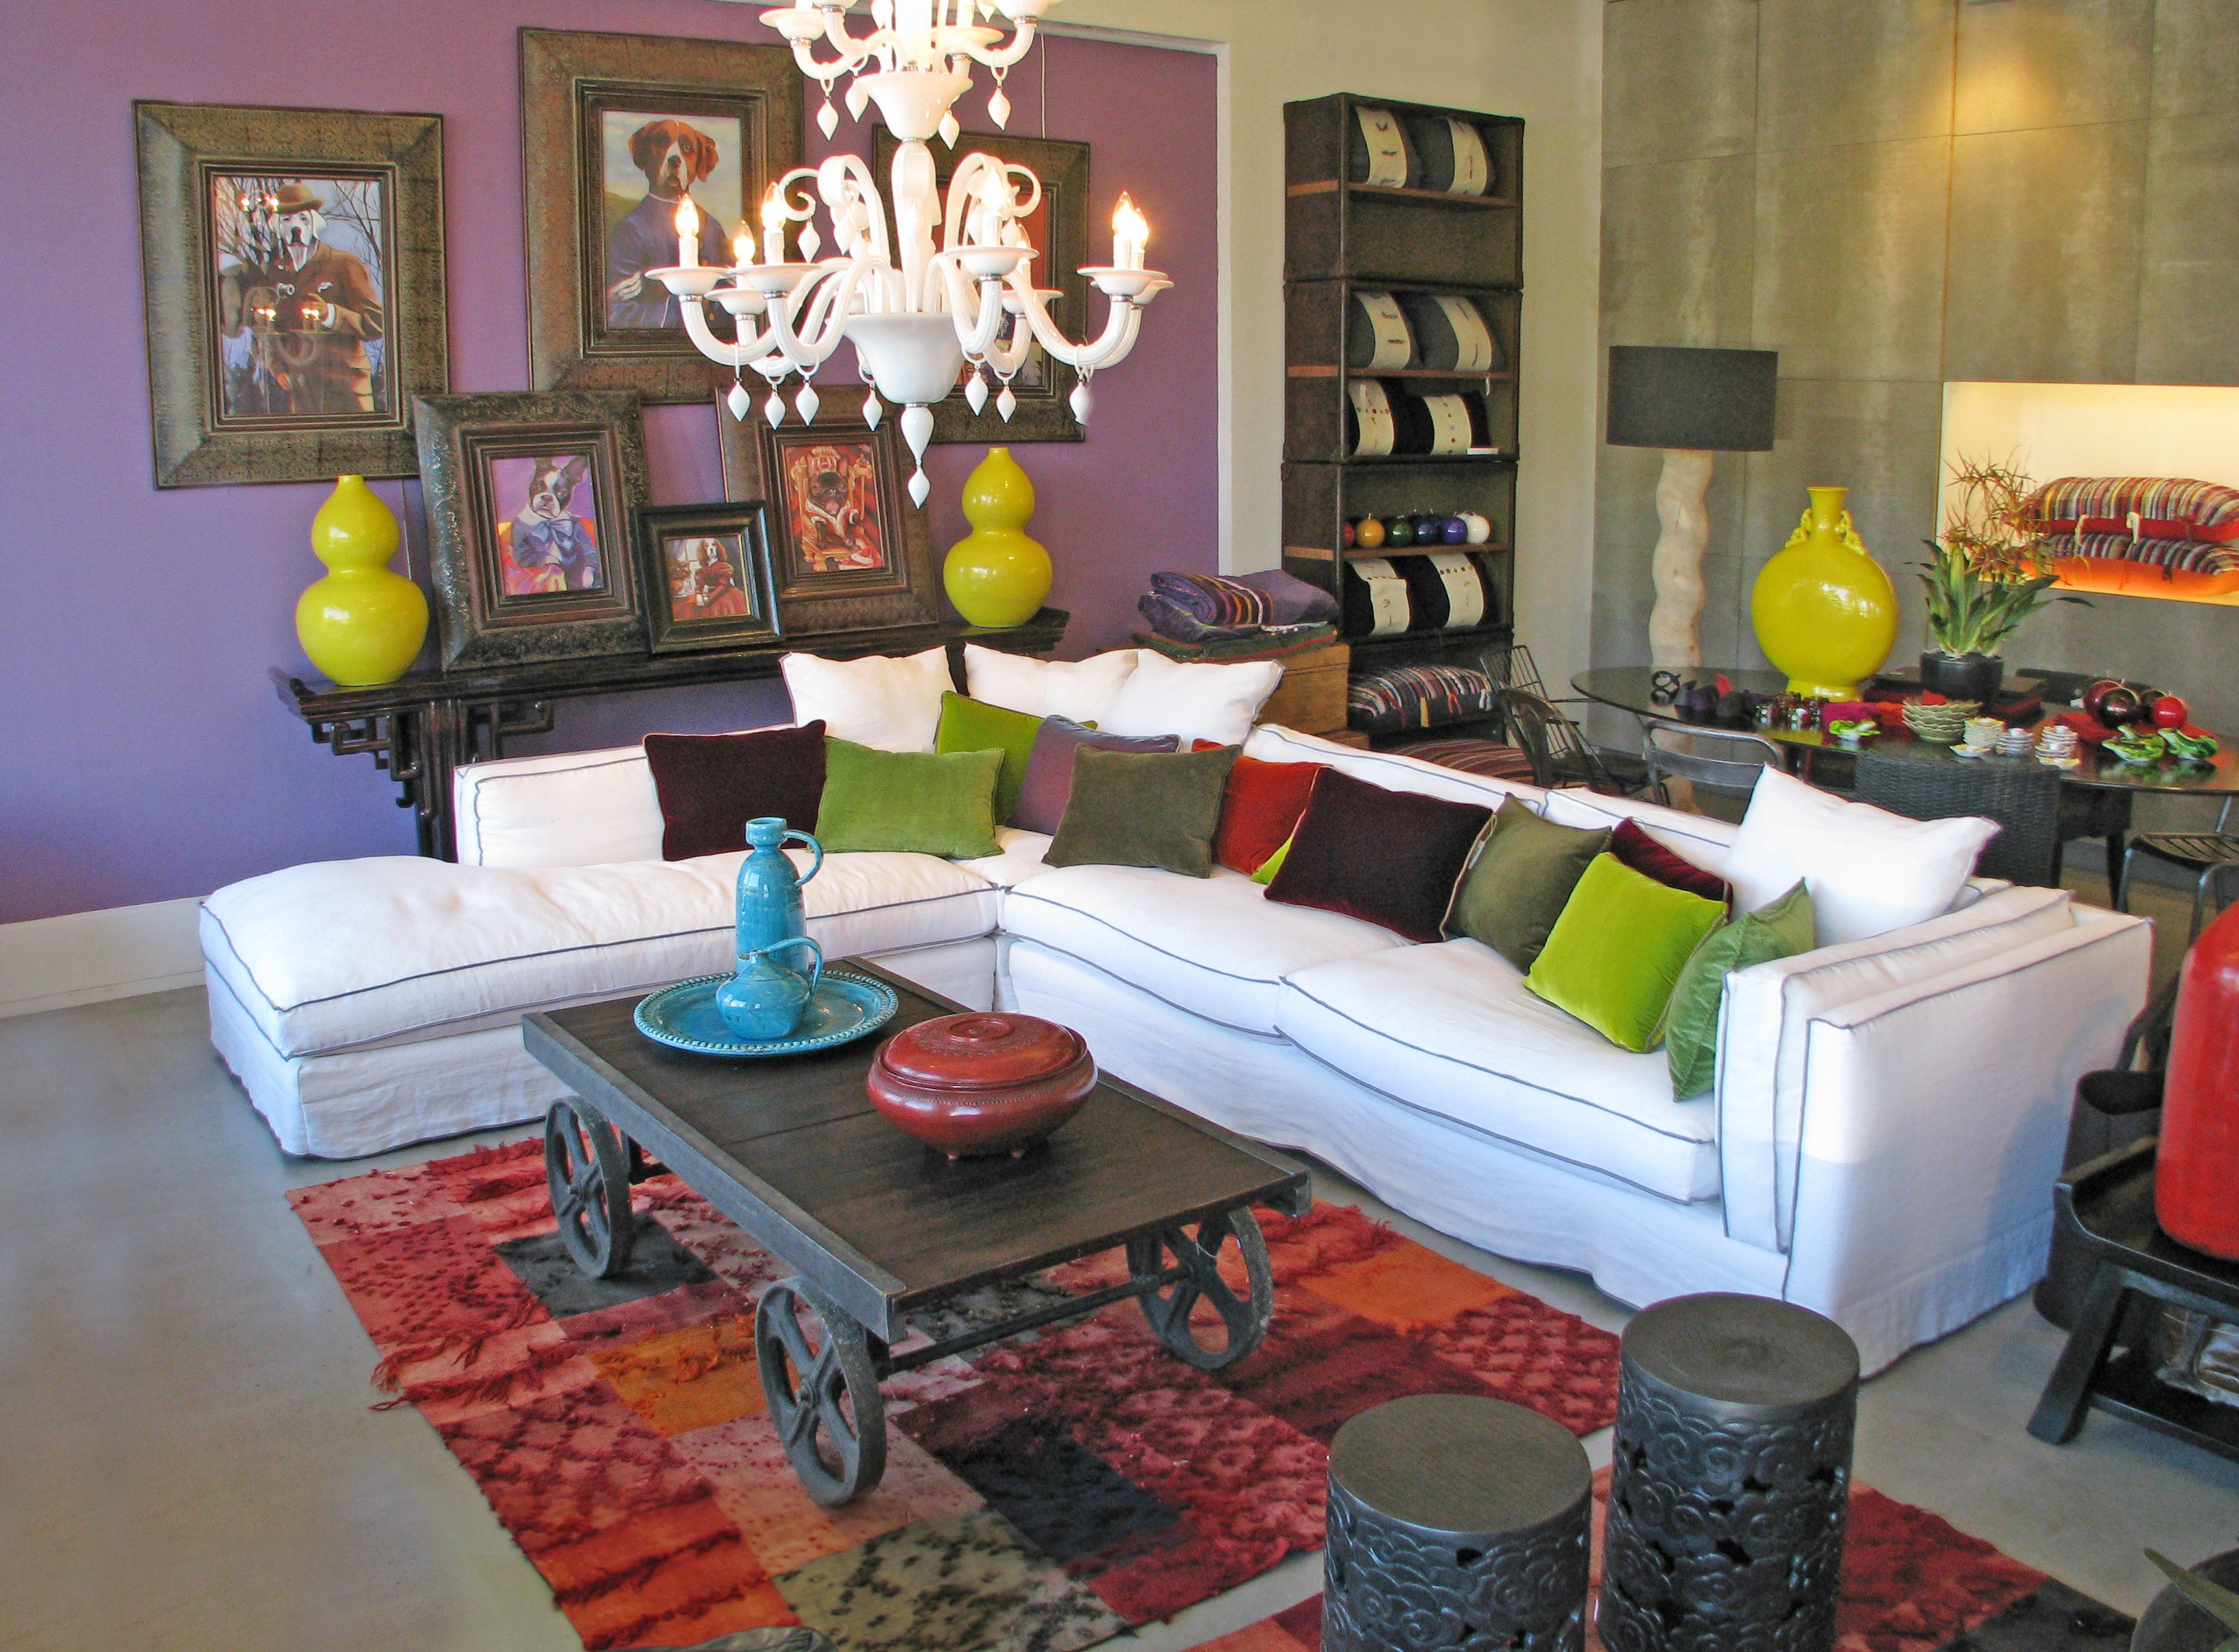 Superieur Dreaming Of Relaxing Moments? Create Your Own! #ethnic #living #room #